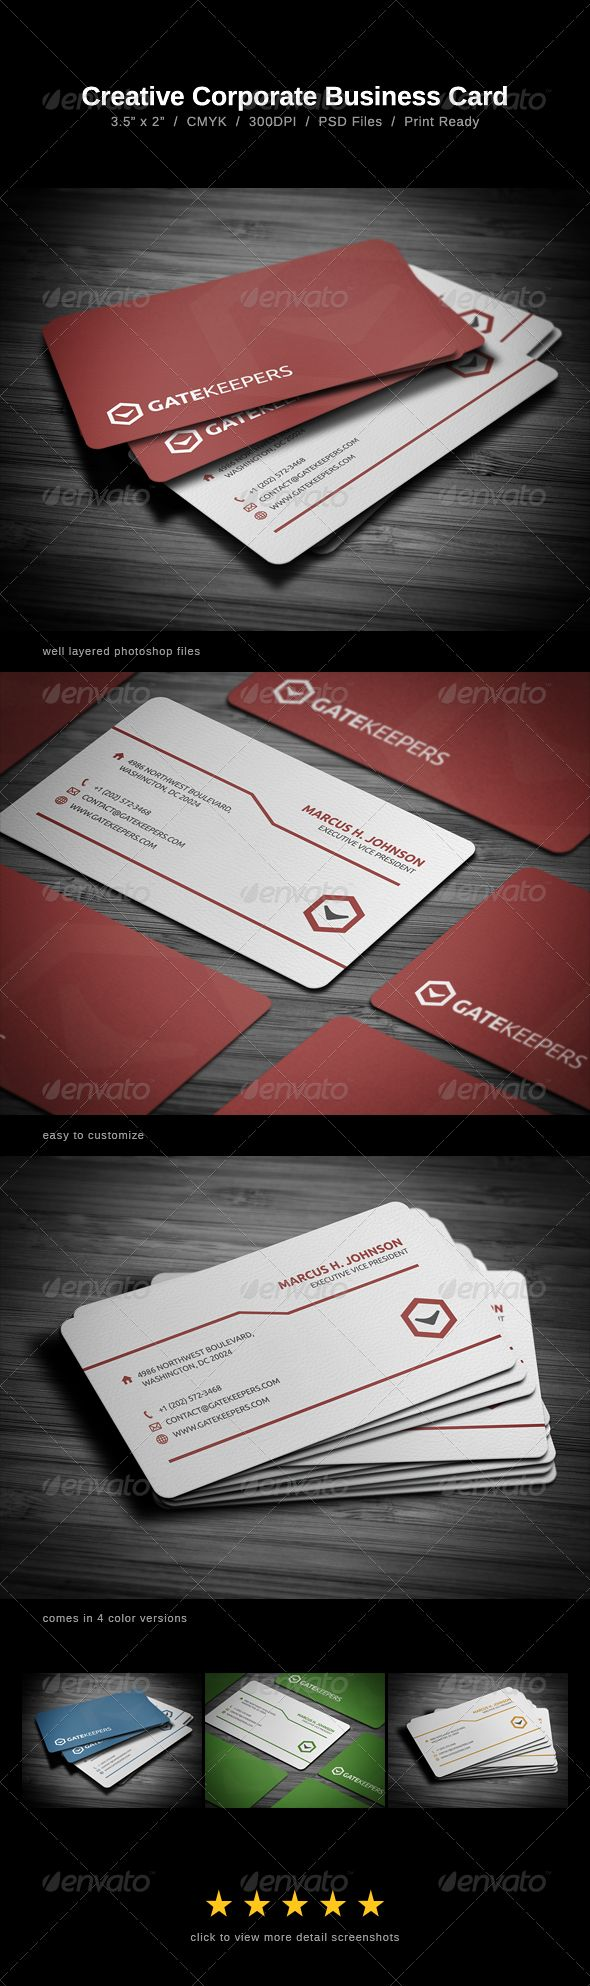 Best 40 business cards ideas on pinterest business cards carte de creative business card reheart Gallery